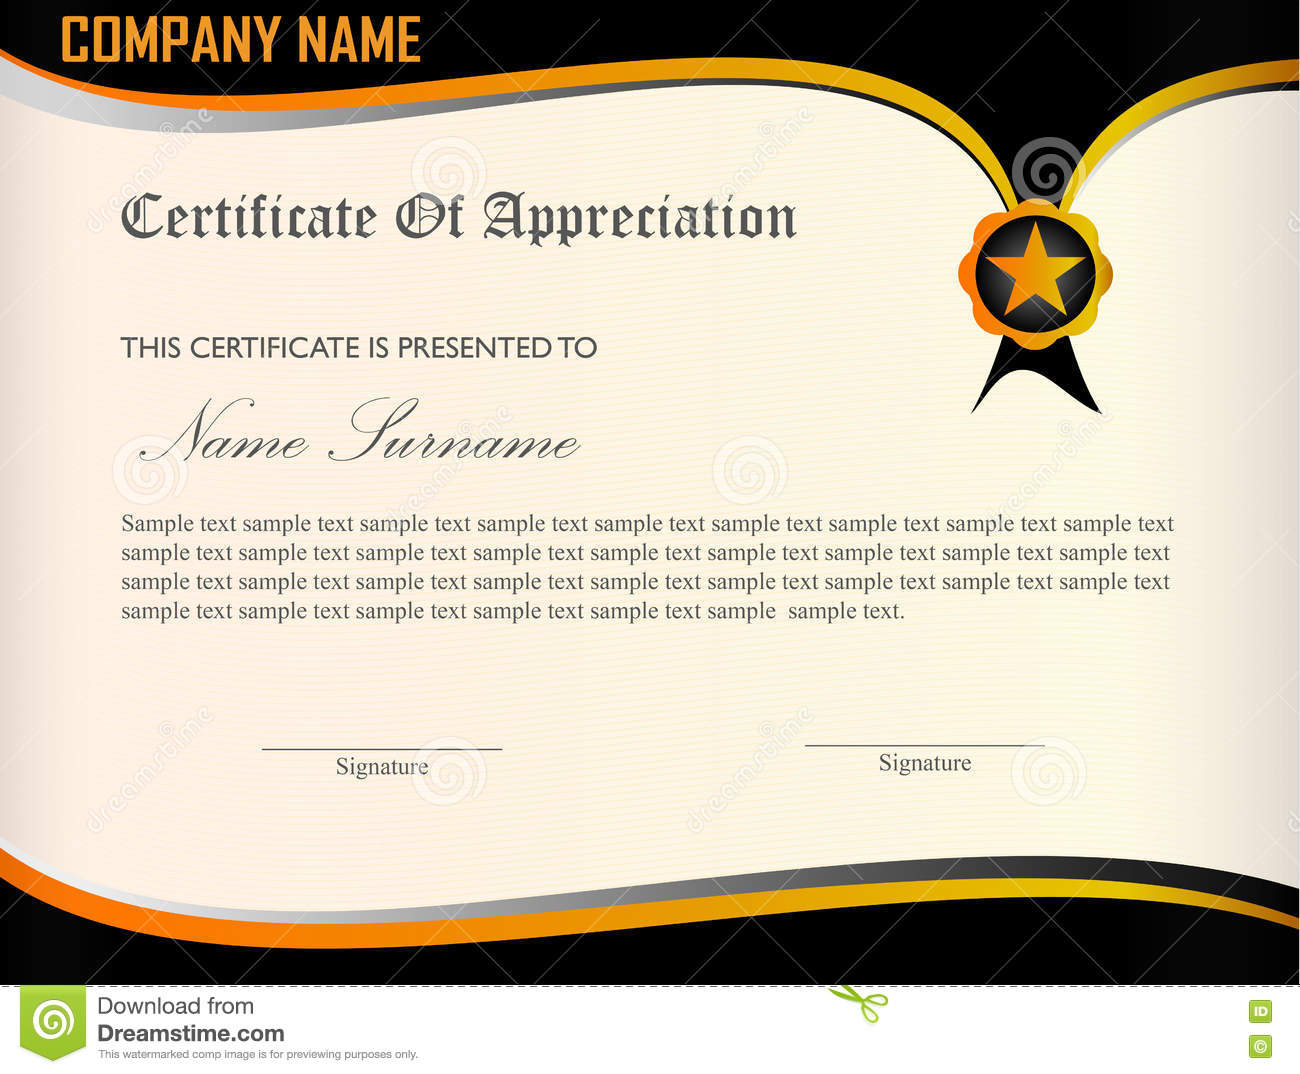 Examples of certificates of appreciation wording delivery document sample certificate of appreciation certificate appreciation template premium modern design 74767909 sample certificate of appreciationhtml yadclub Gallery